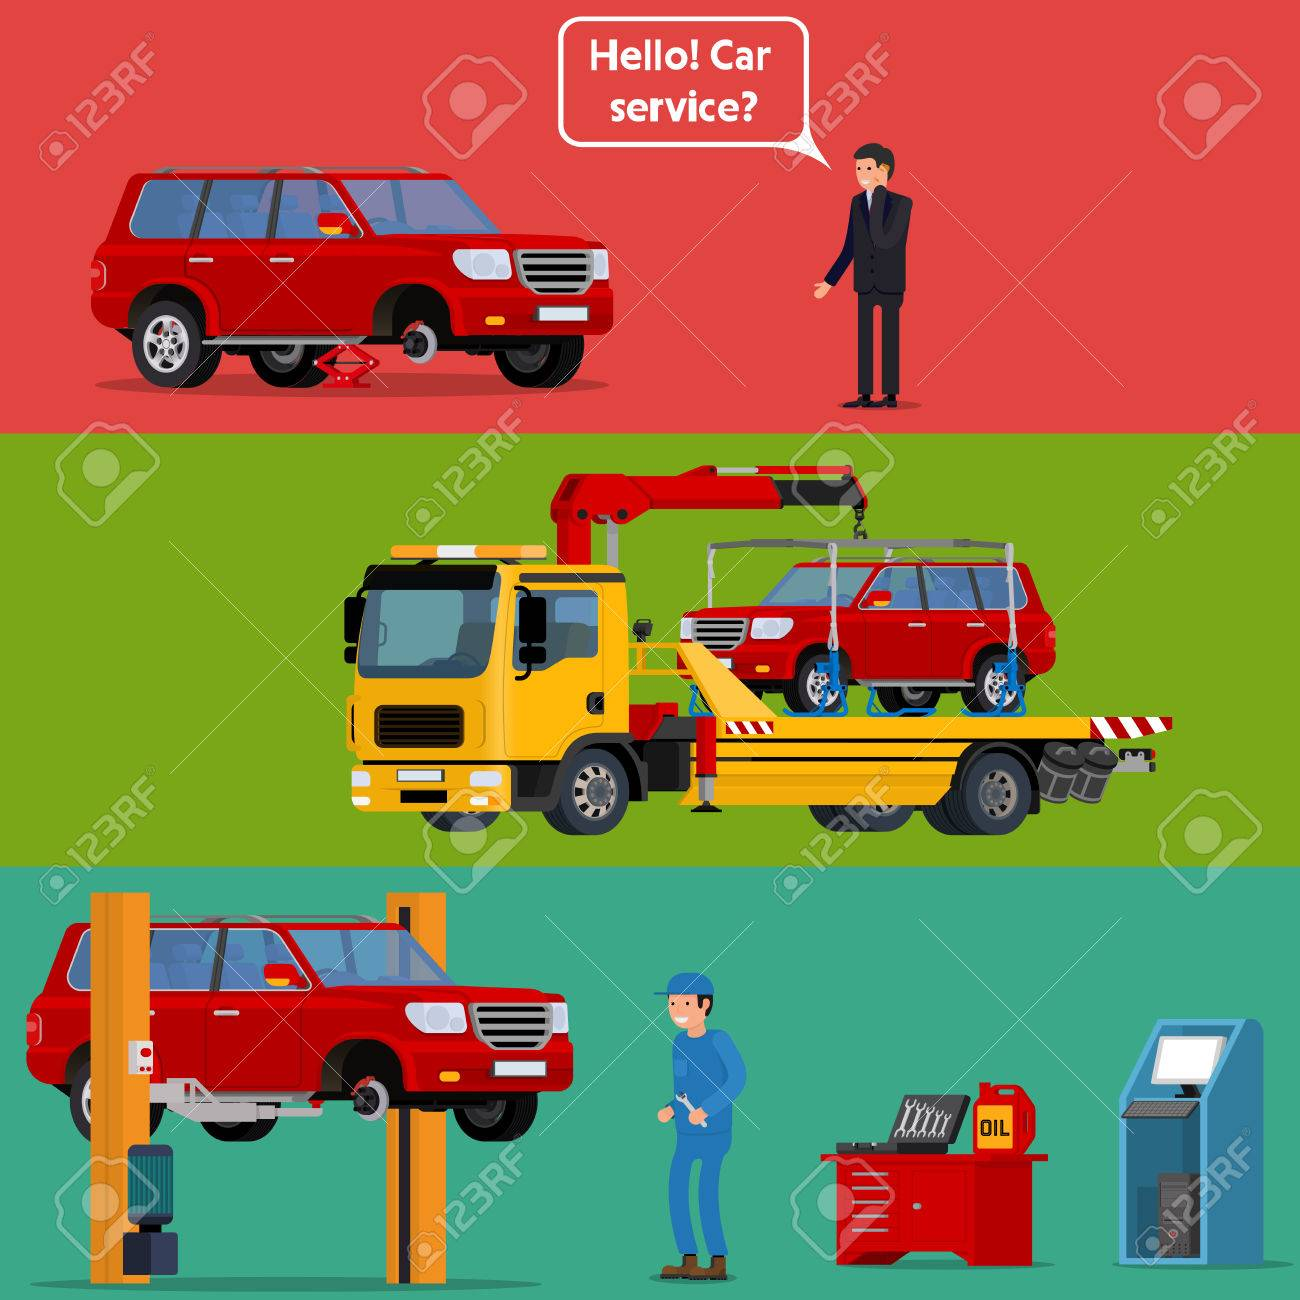 Cool vector trendy flat design worried driver calling roadside assistance to help with his breakdown car. Tow truck transporting a broken machine to the car service. Broken car in auto repair shop being fixed on car lift with mechanic professional holding - 64756594